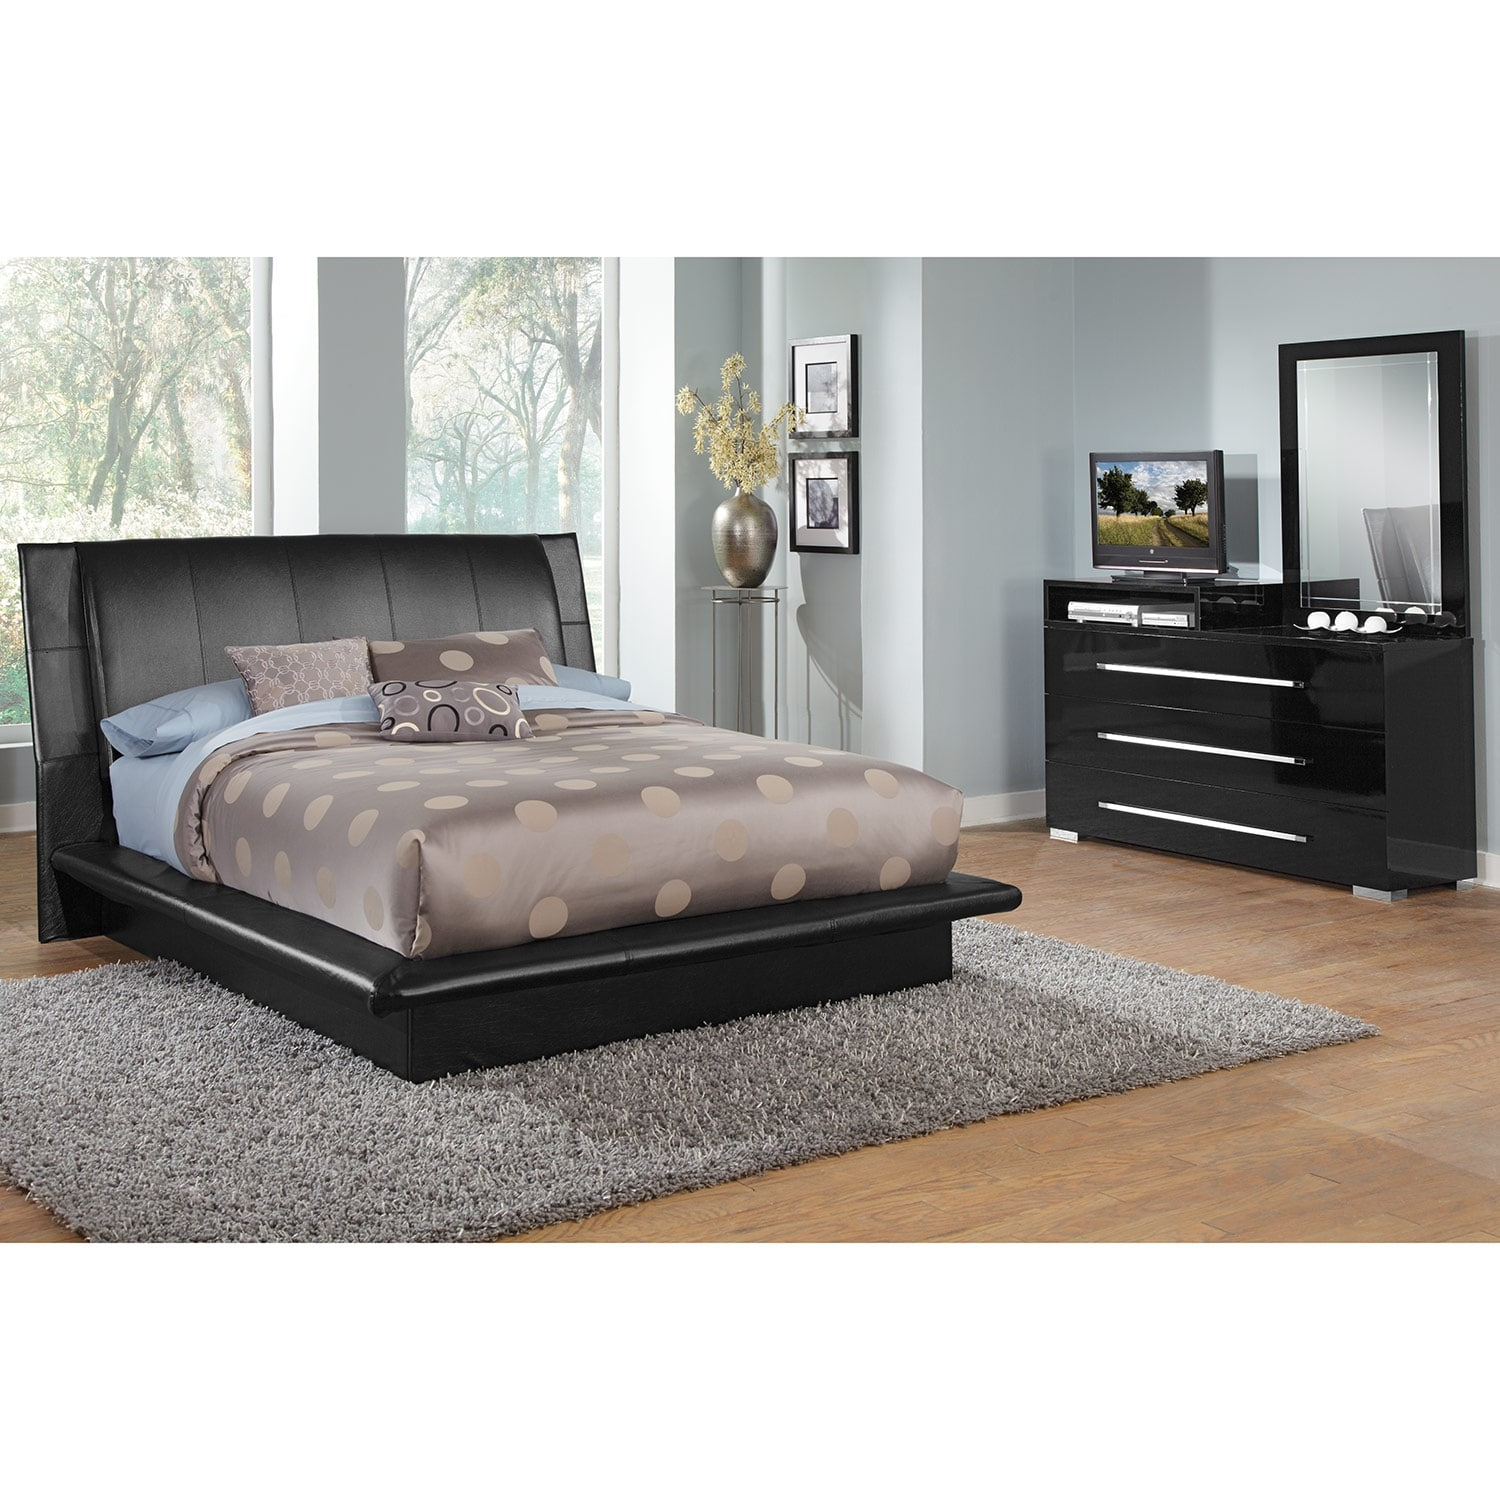 Dimora black 5 pc queen bedroom value city furniture for Bedroom furniture